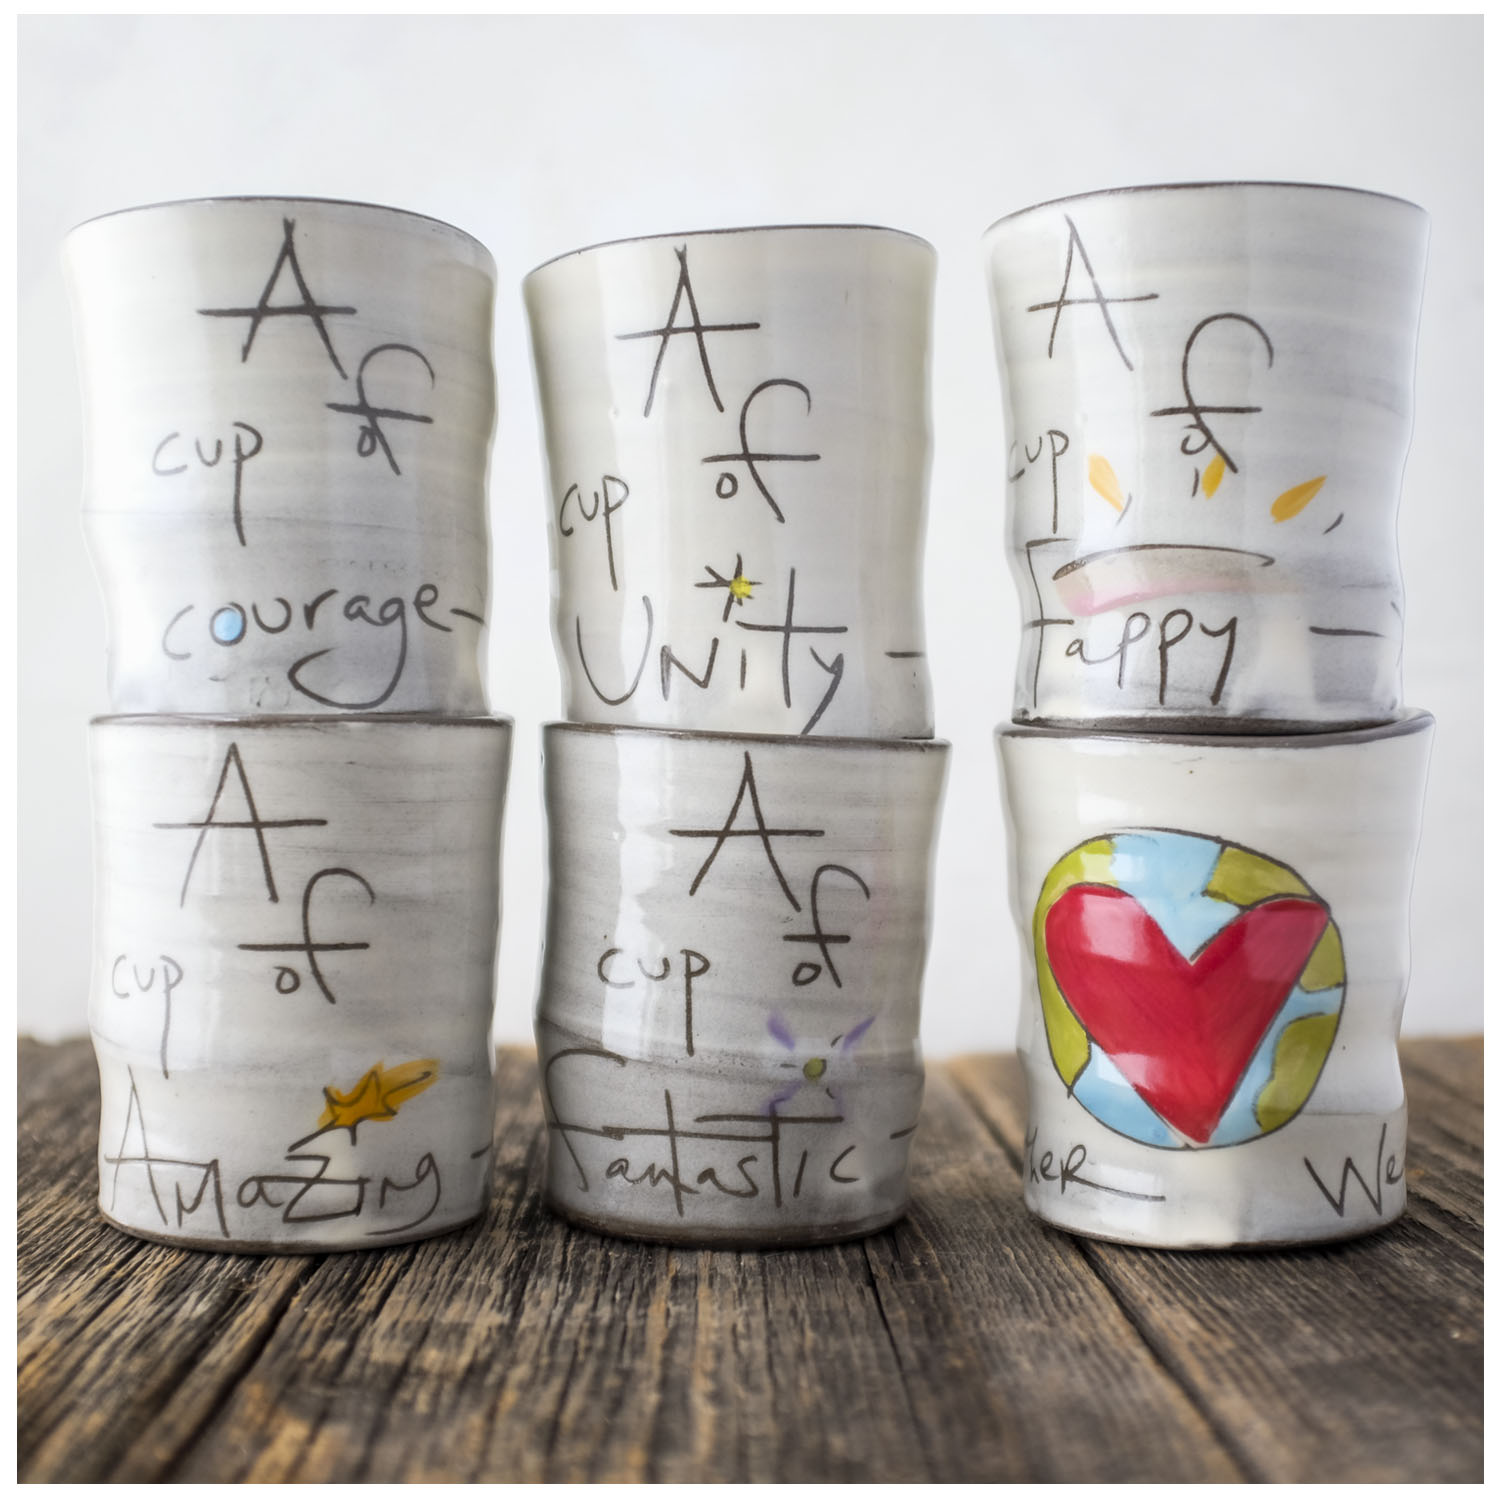 cups stacked post card.jpg